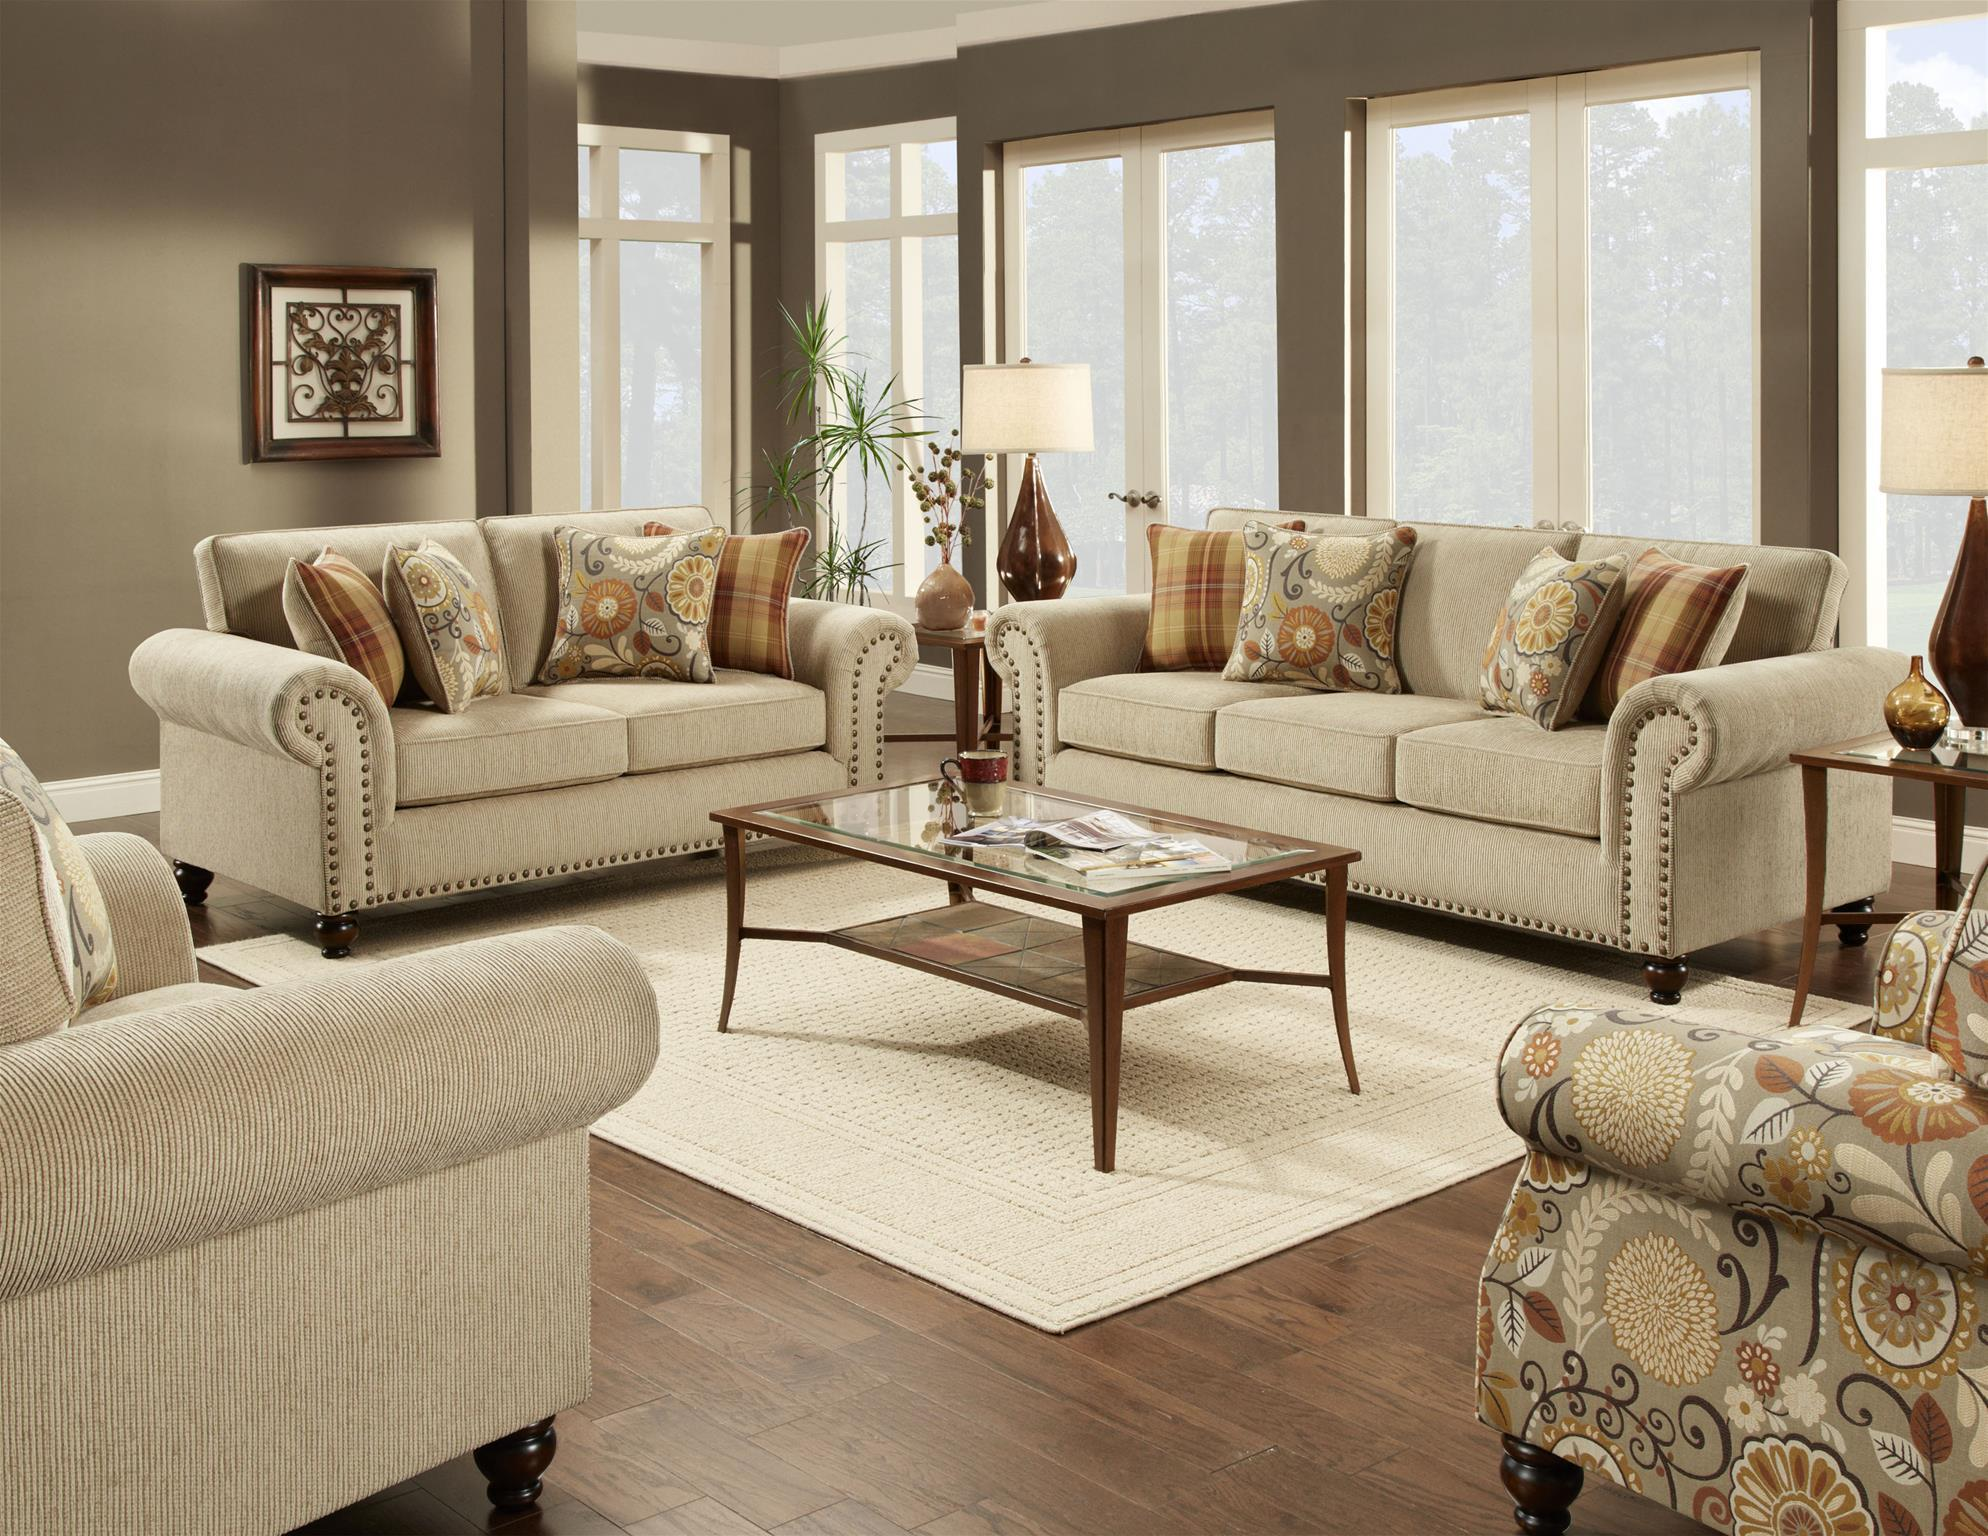 Fusion Furniture 3110 Stationary Living Room Group Olinde 39 S Furniture Stationary Living Room